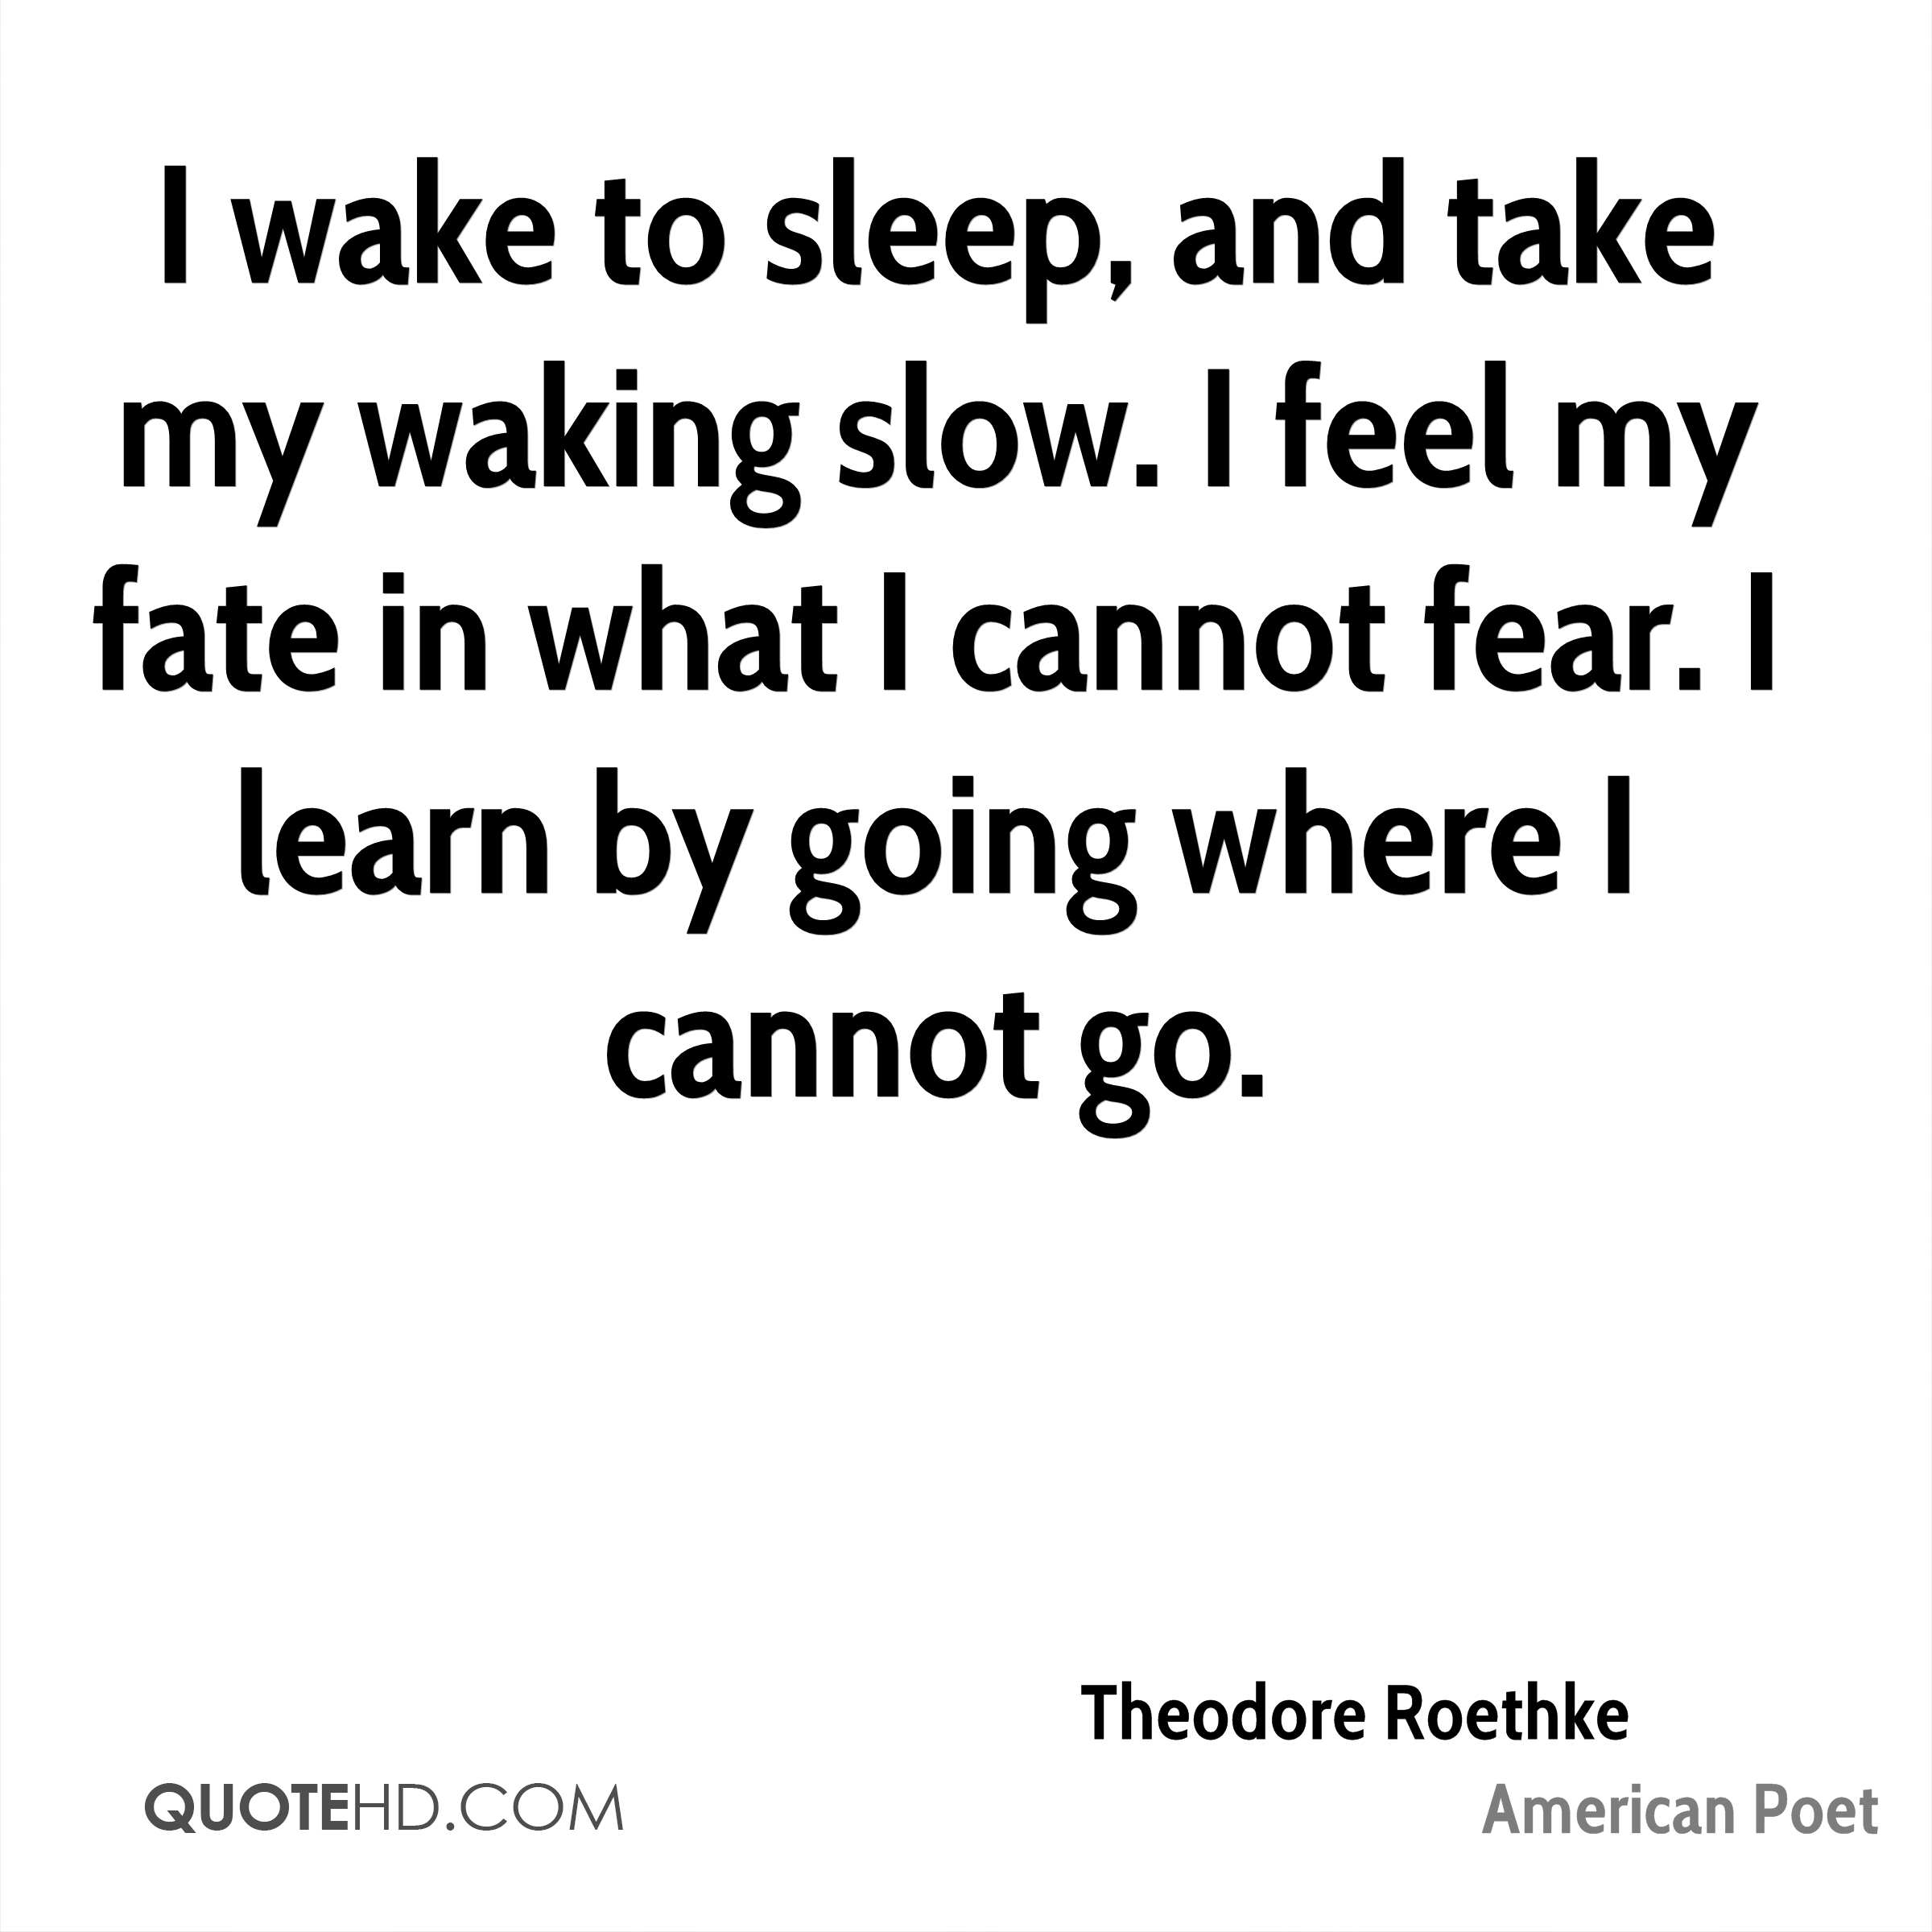 I wake to sleep, and take my waking slow. I feel my fate in what I cannot fear. I learn by going where I cannot go.